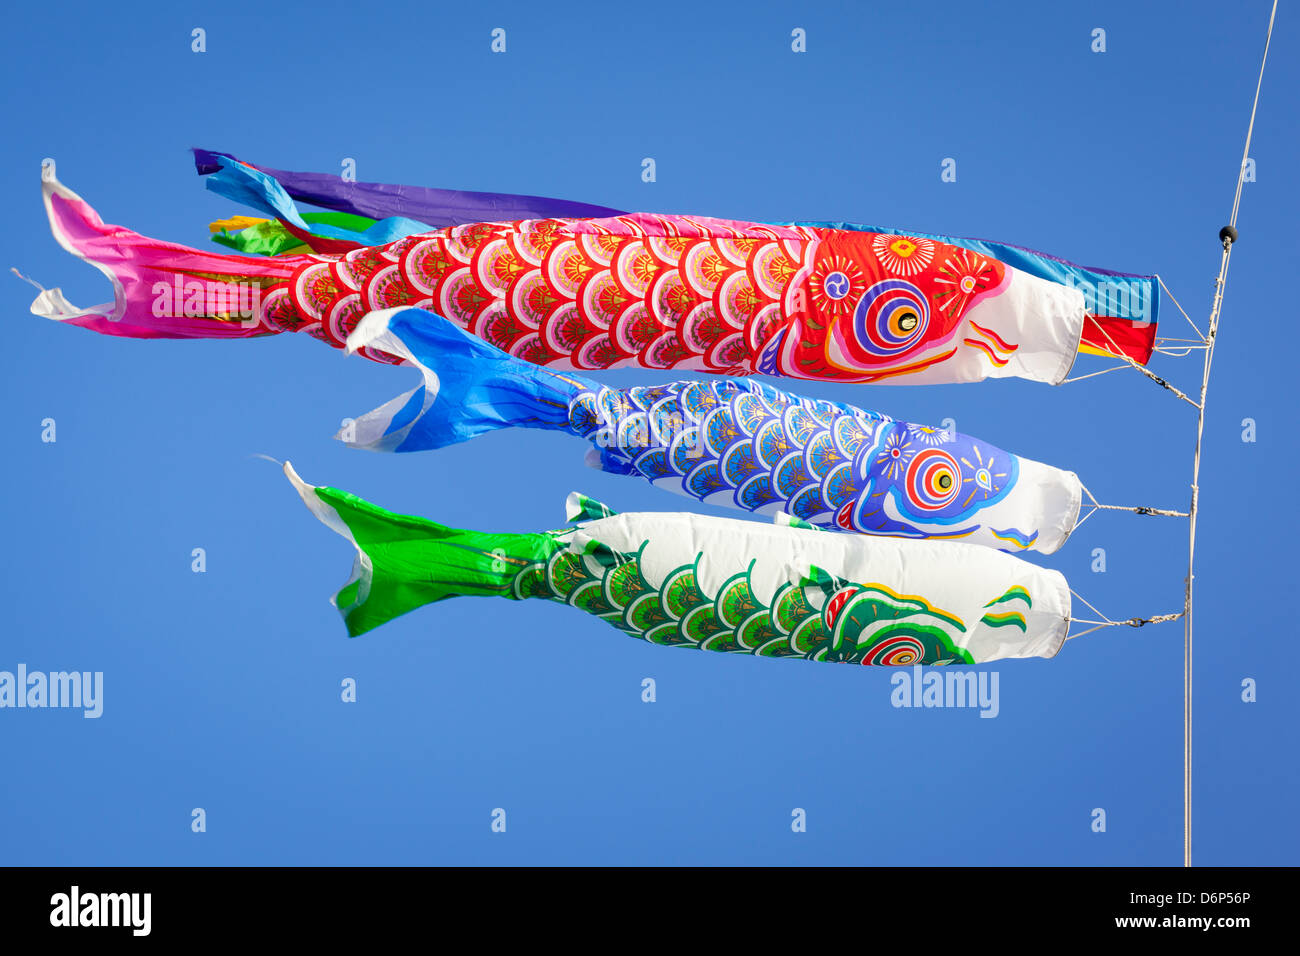 Colourful carp streamers or Koinobori flutter in the wind. - Stock Image